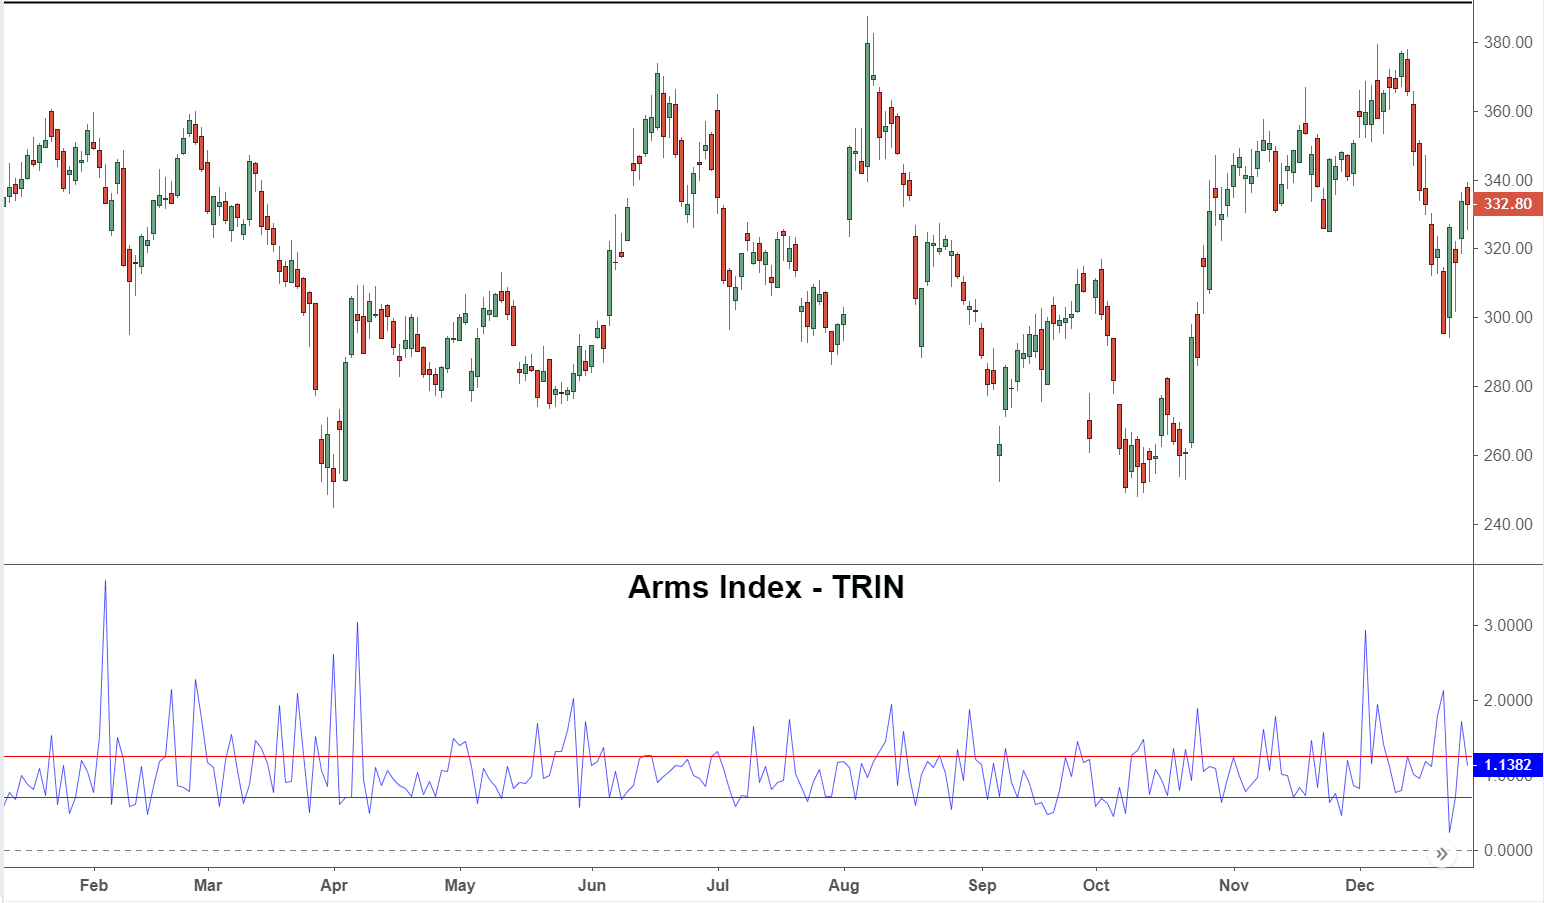 Arms Index - TRIN Definition and Application